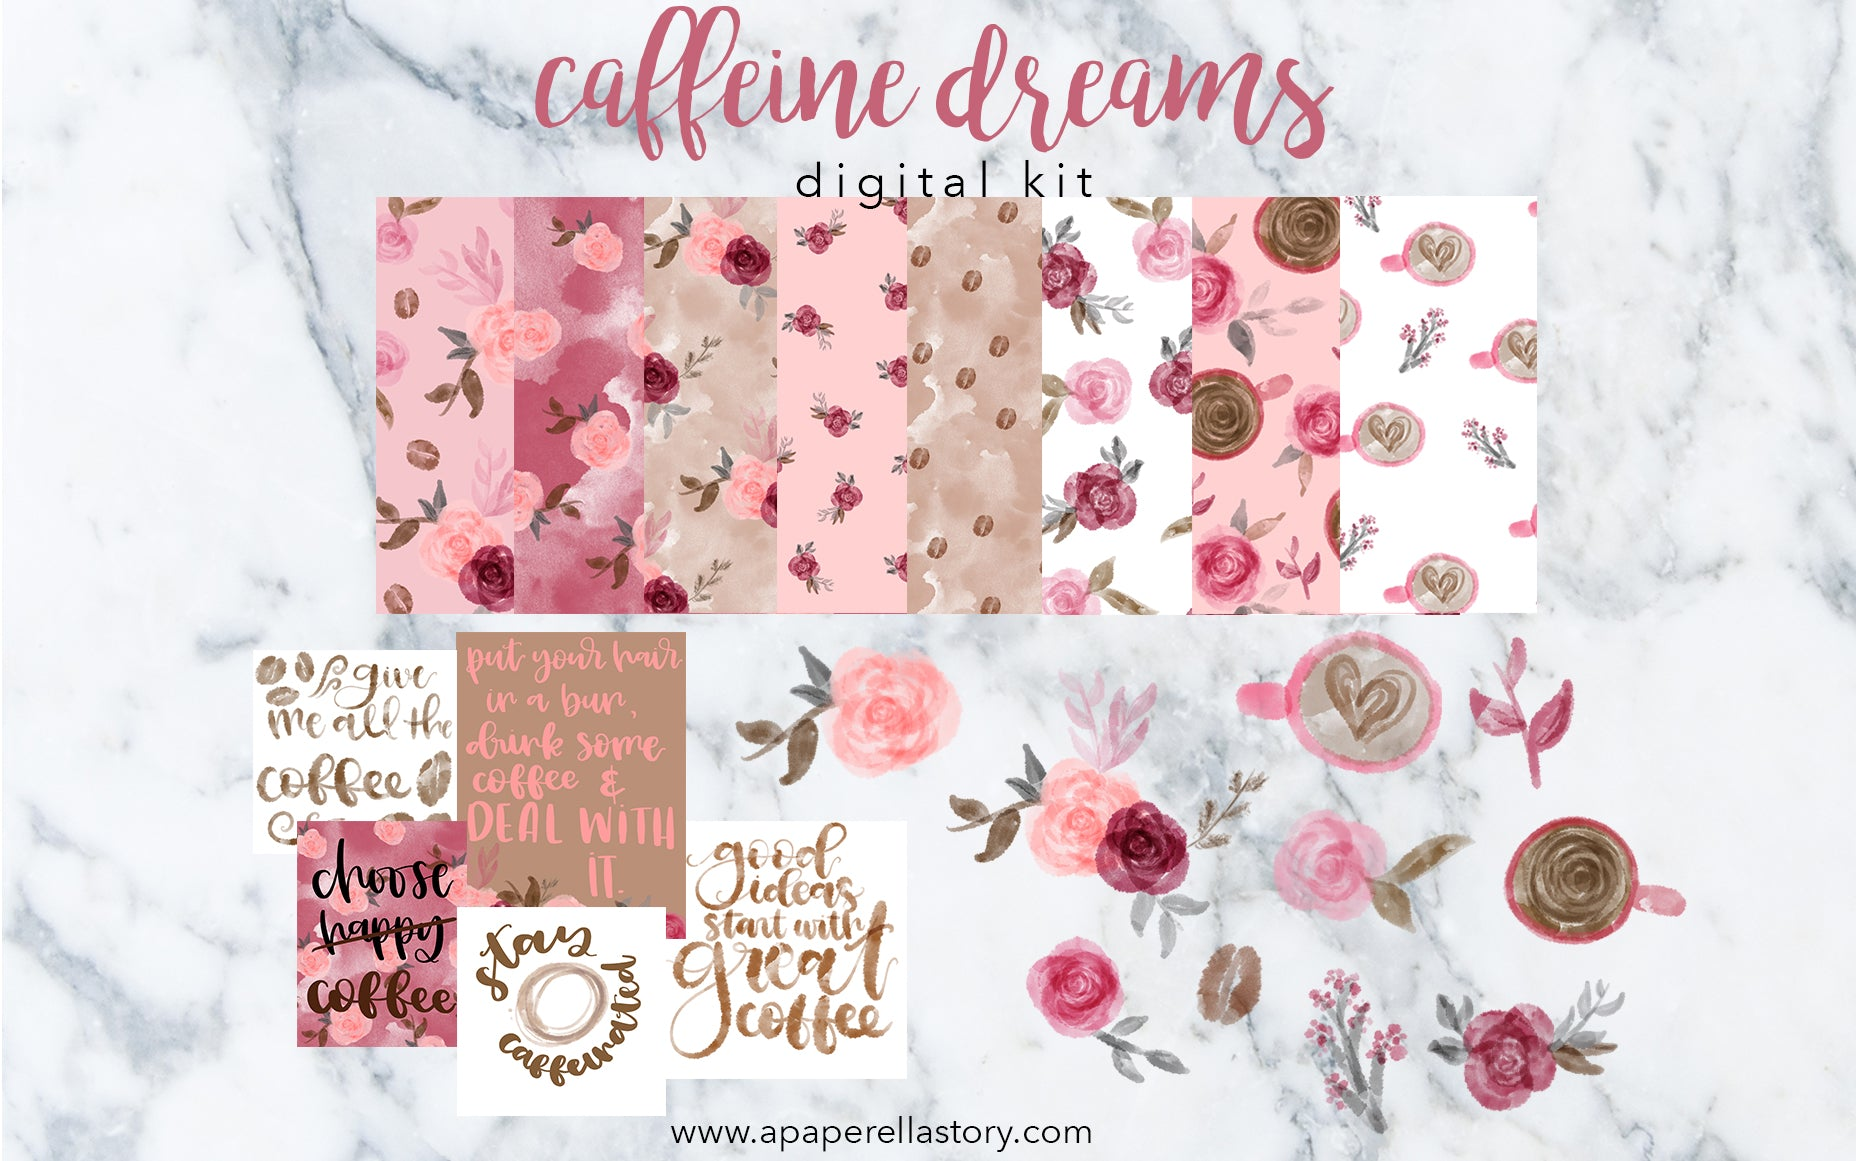 Caffeine Dreams - Digital Kit